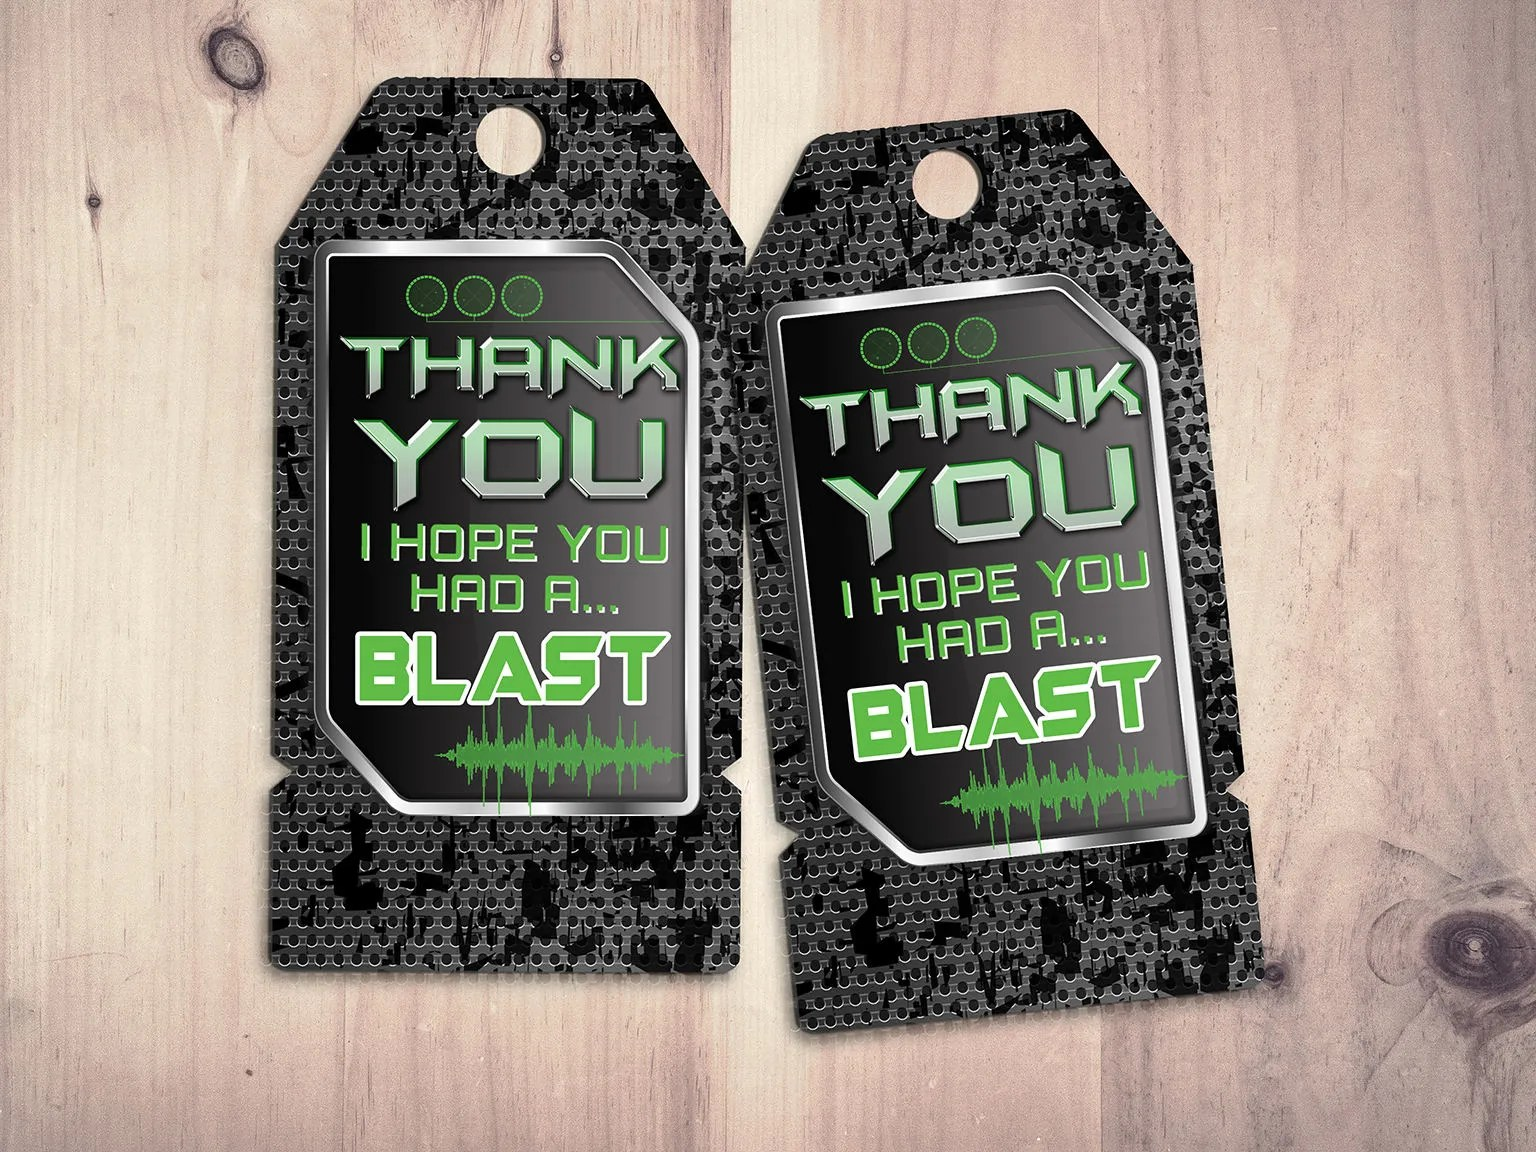 laser tag party thank you tags for